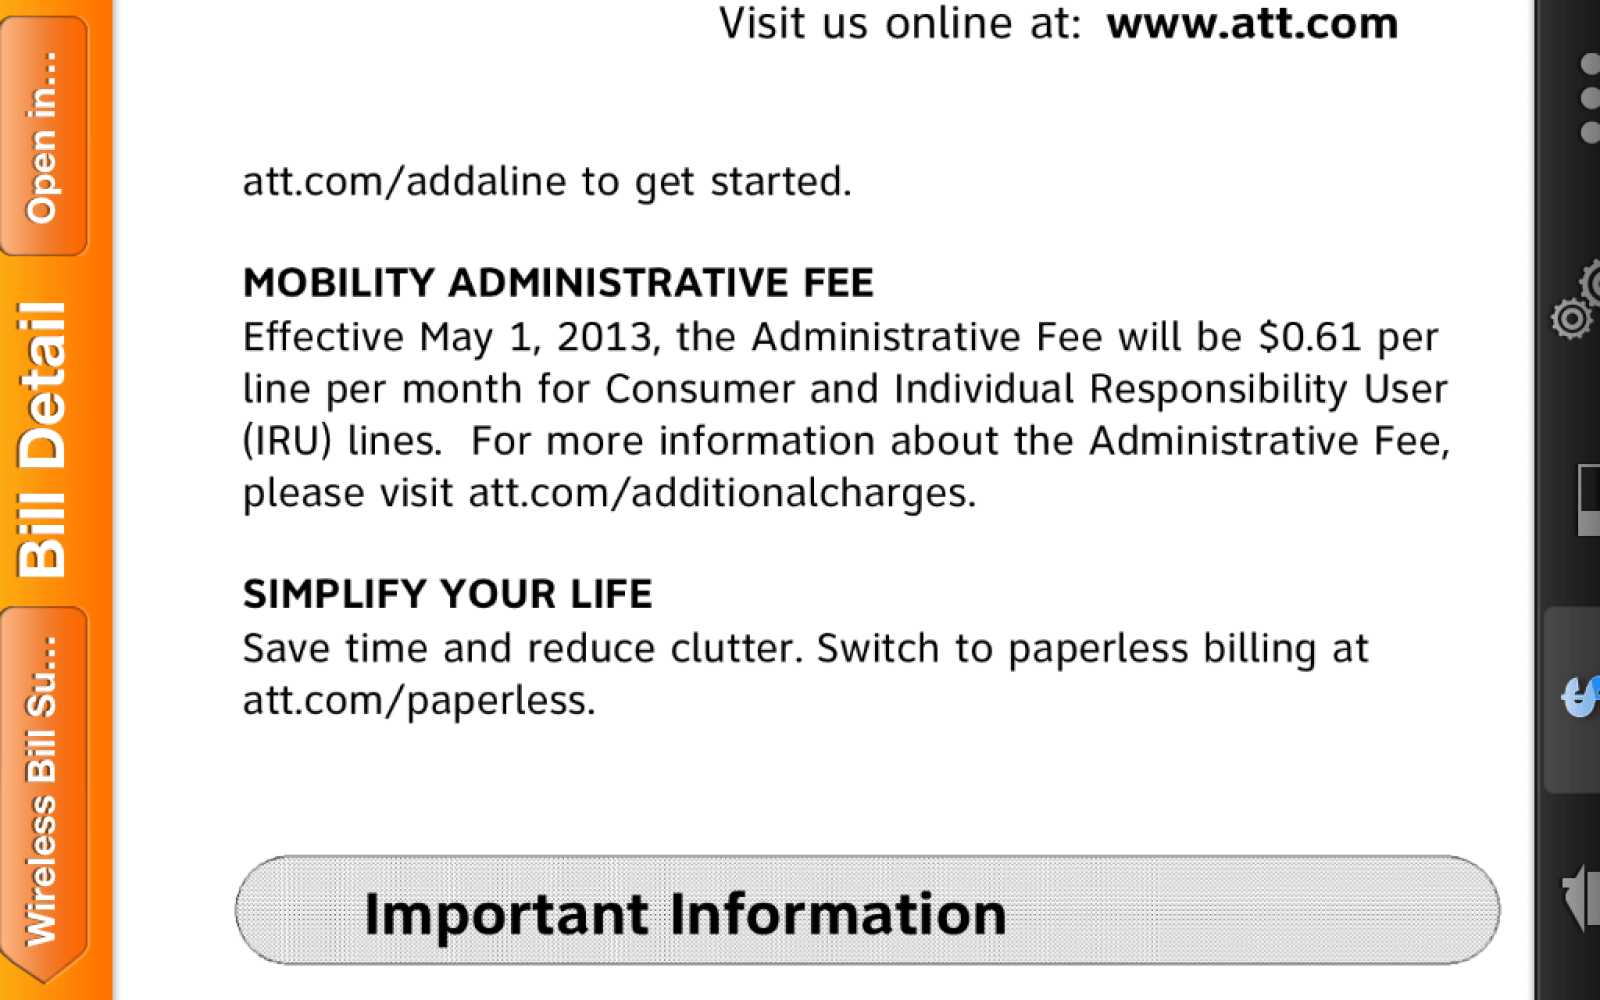 AT&T explains its new 61 cent/month administrative fee policy